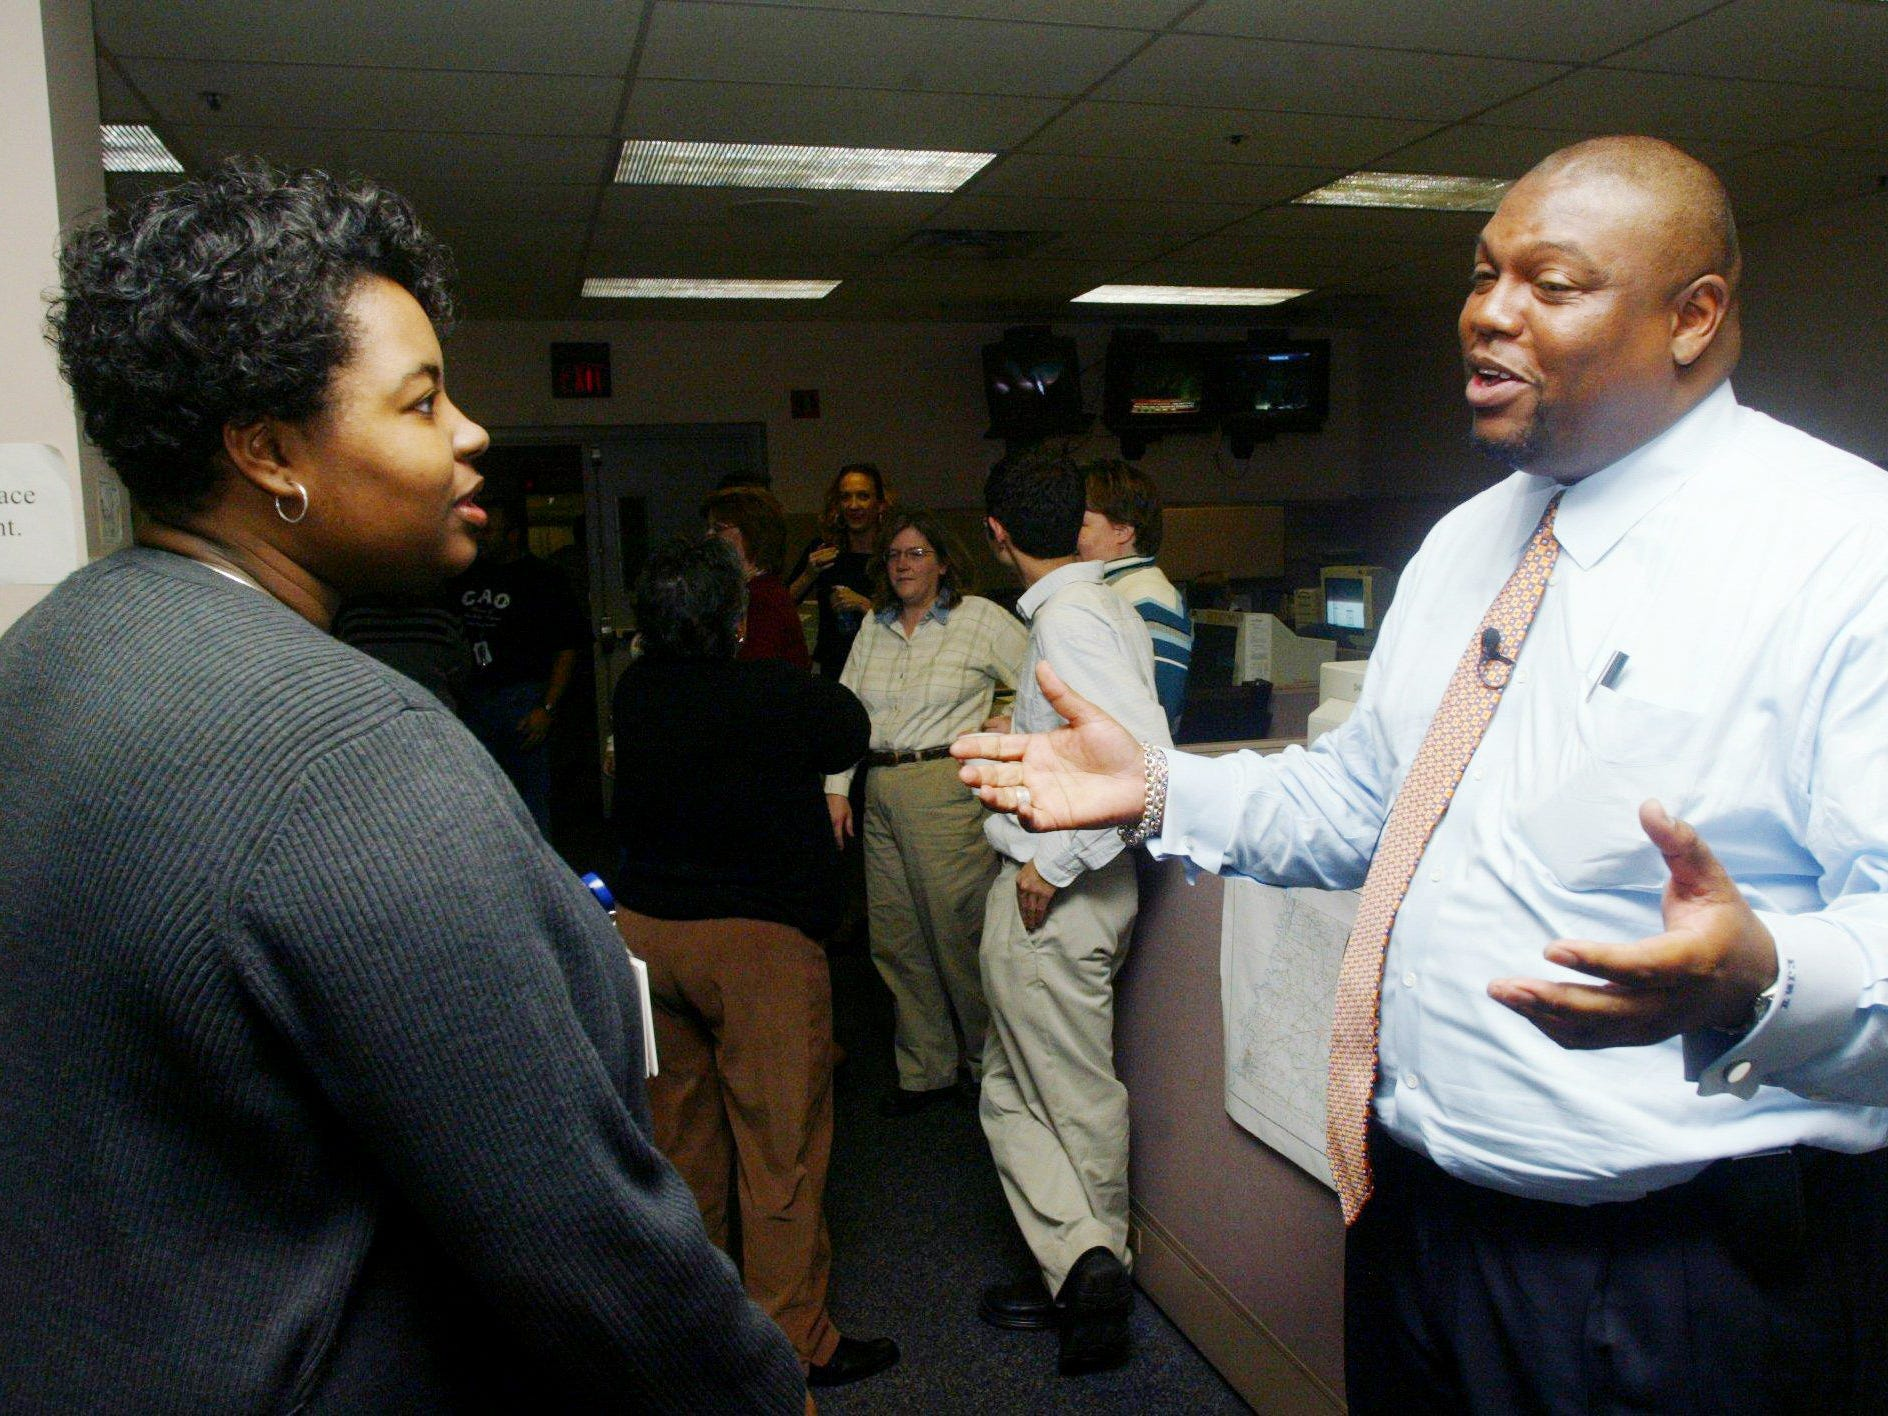 Everett J. Mitchell II, right, who was named vice president of news and editor of The Tennessean, talks with reporter Michelle Shaw after speaking to the staff in the newsroom Dec. 6, 2004.